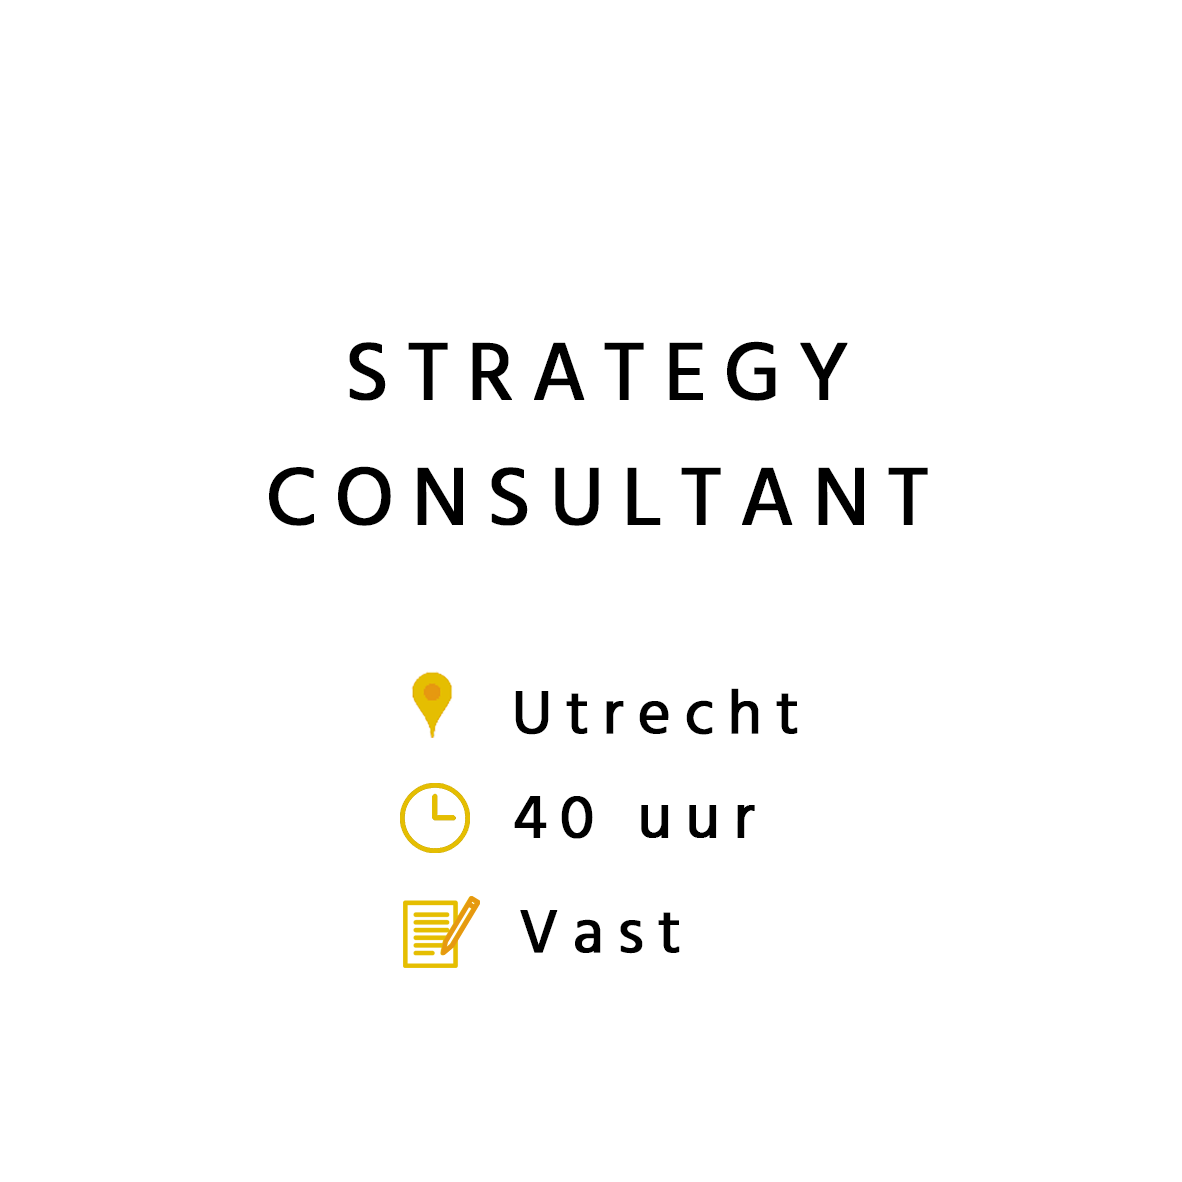 Strategy Consultant